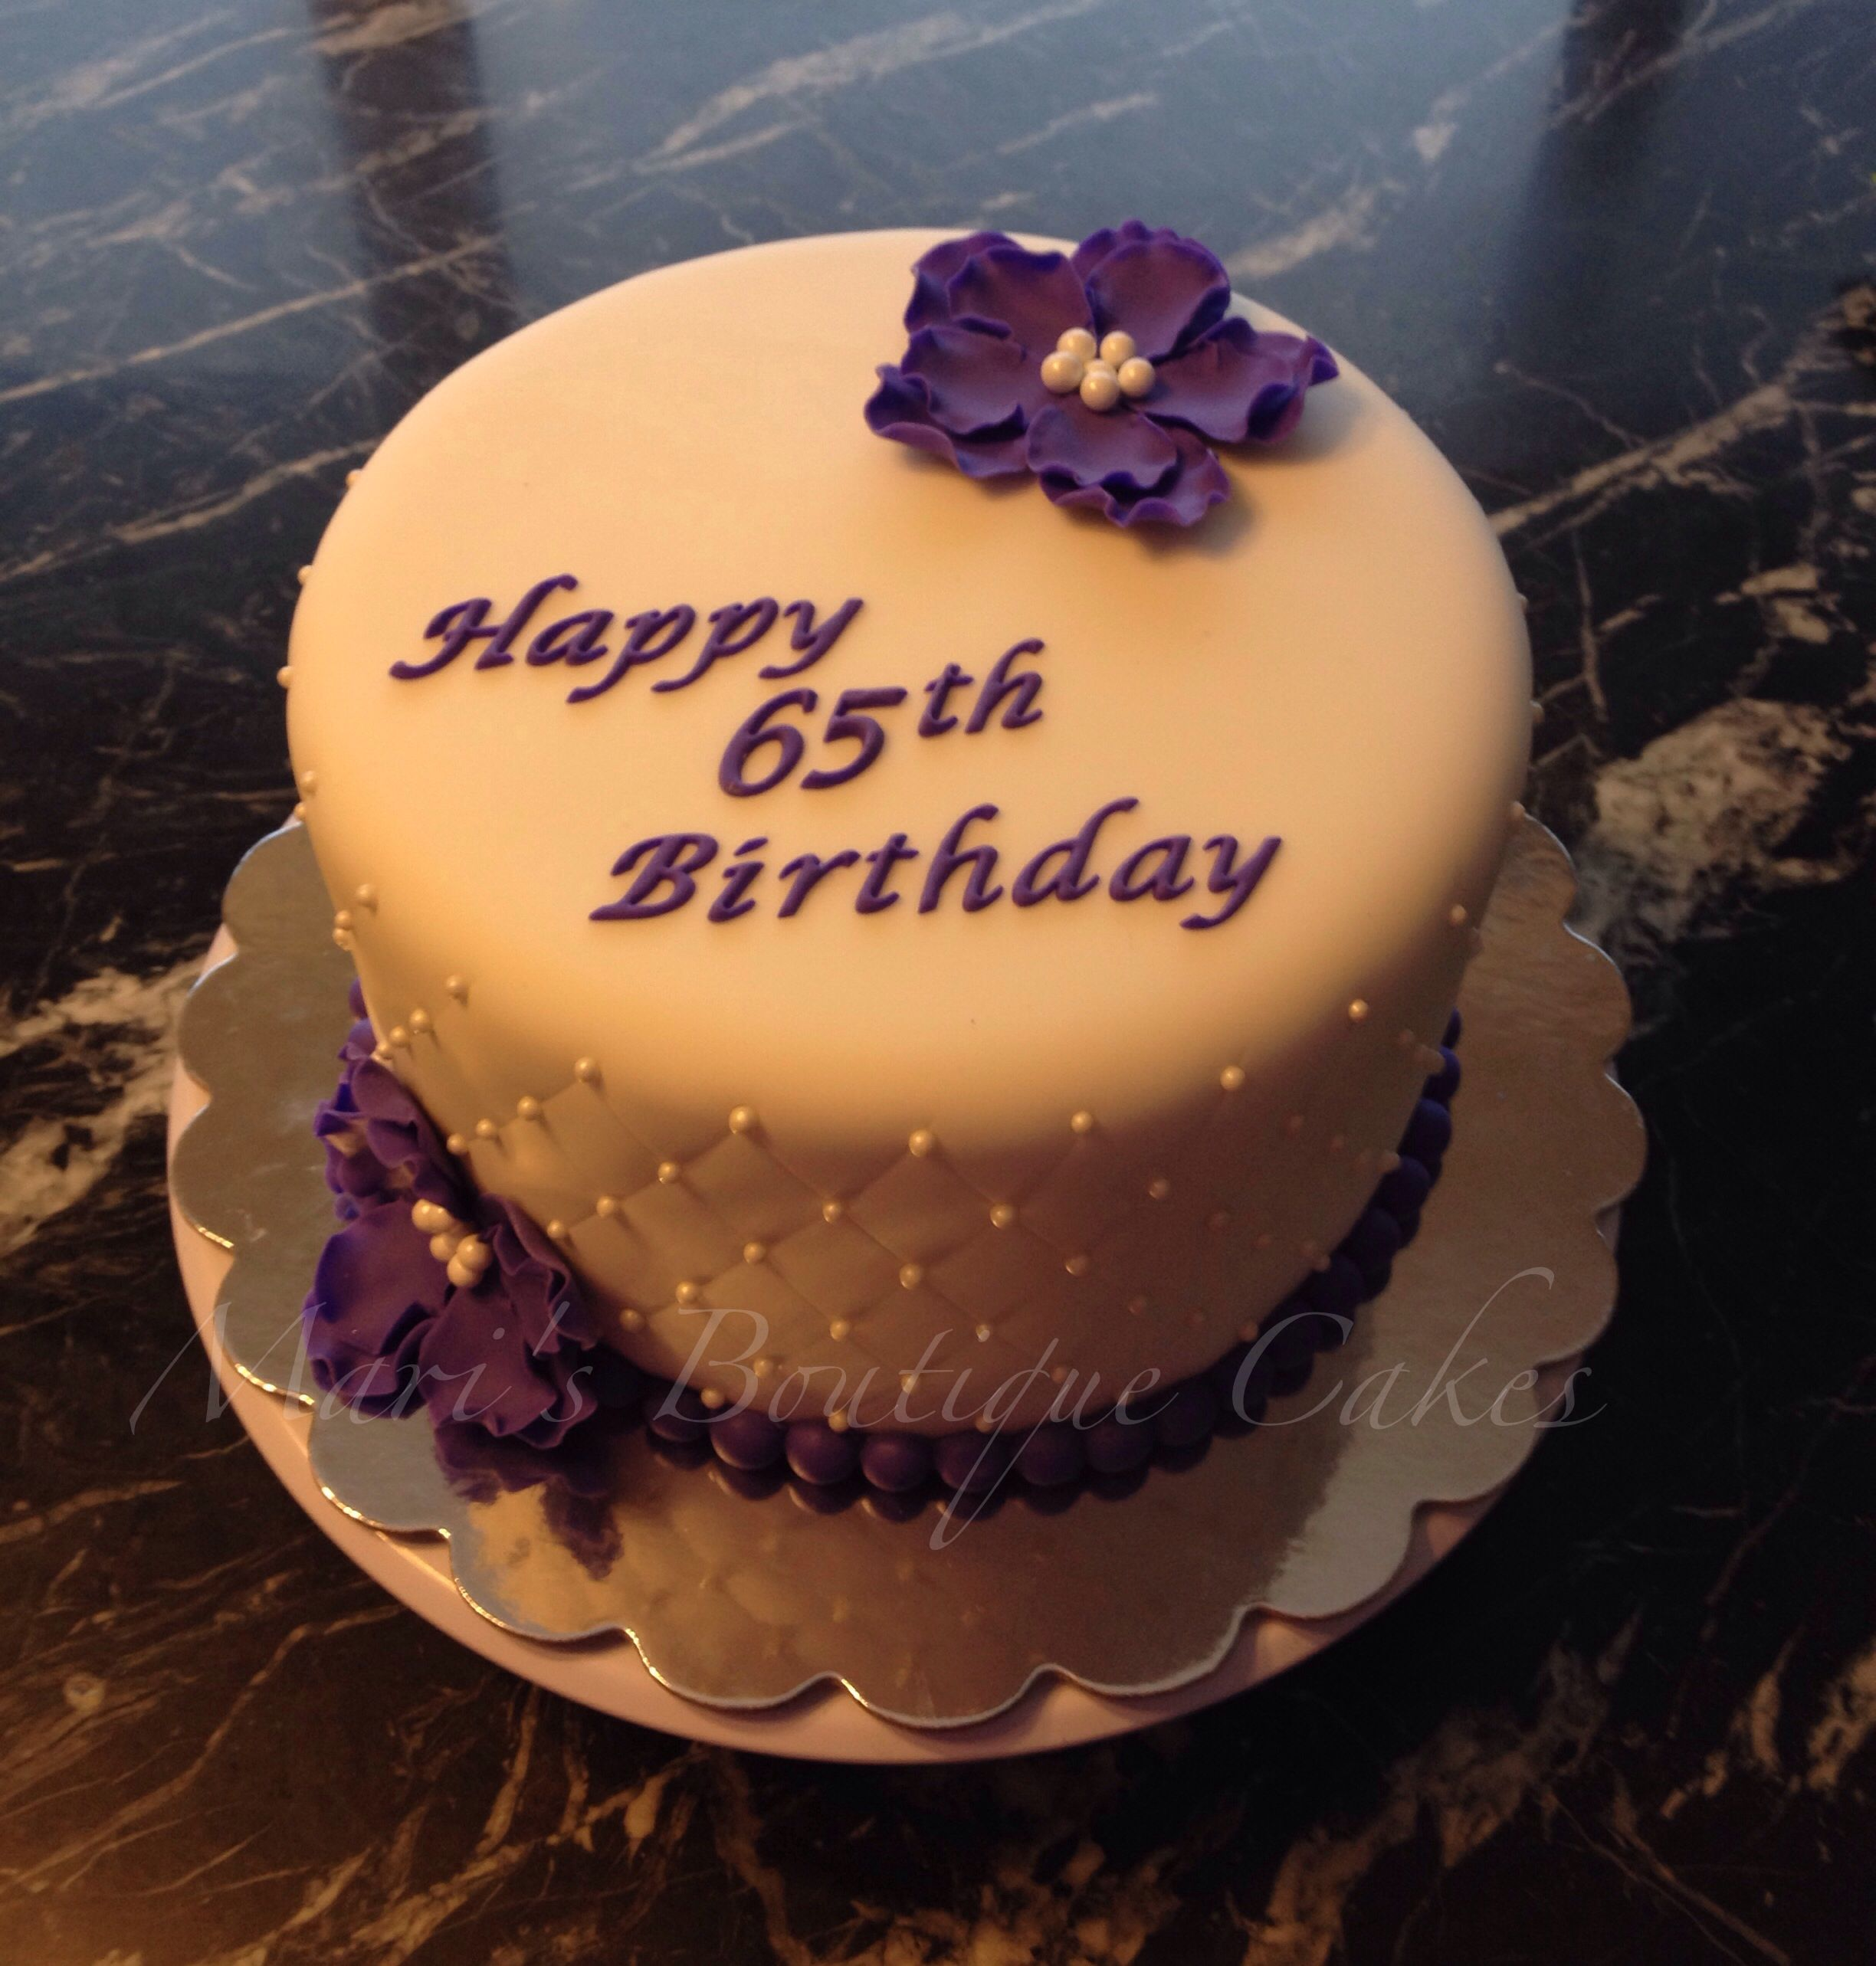 Groovy 65Th Birthday Cake With Purple Flowers By Maris Boutique Cakes Funny Birthday Cards Online Alyptdamsfinfo